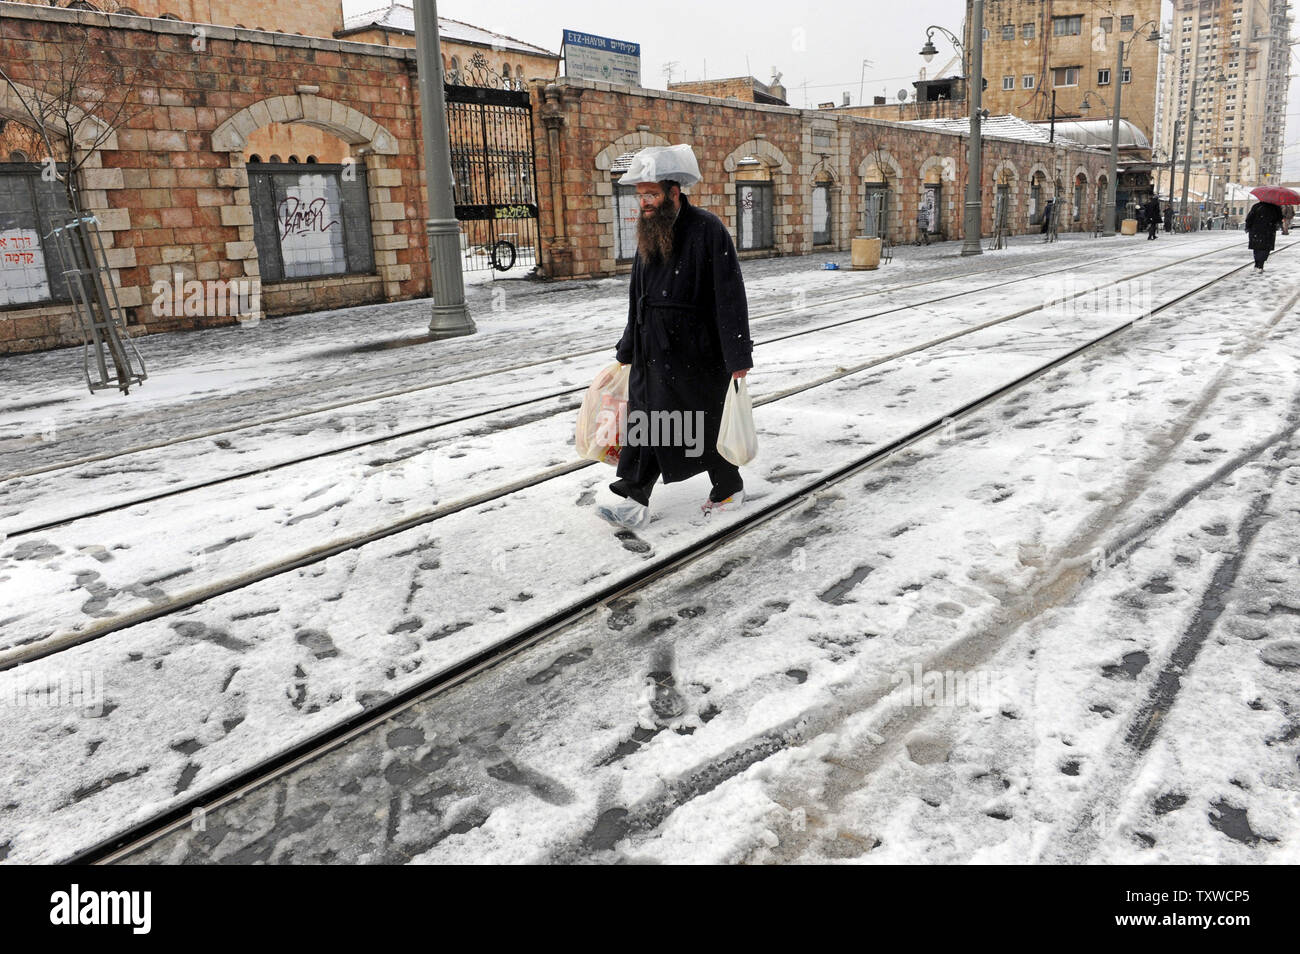 An Ultra-Orthodox Israeli walks with plastic bags on his shoes and hat during a rare winter snow storm on Jaffa Road in central Jerusalem, March 2, 2012. Residents of Jerusalem woke to 1.575 inches of snow in the first snow fall in Jerusalem in more than two years.  UPI/Debbie Hill - Stock Image